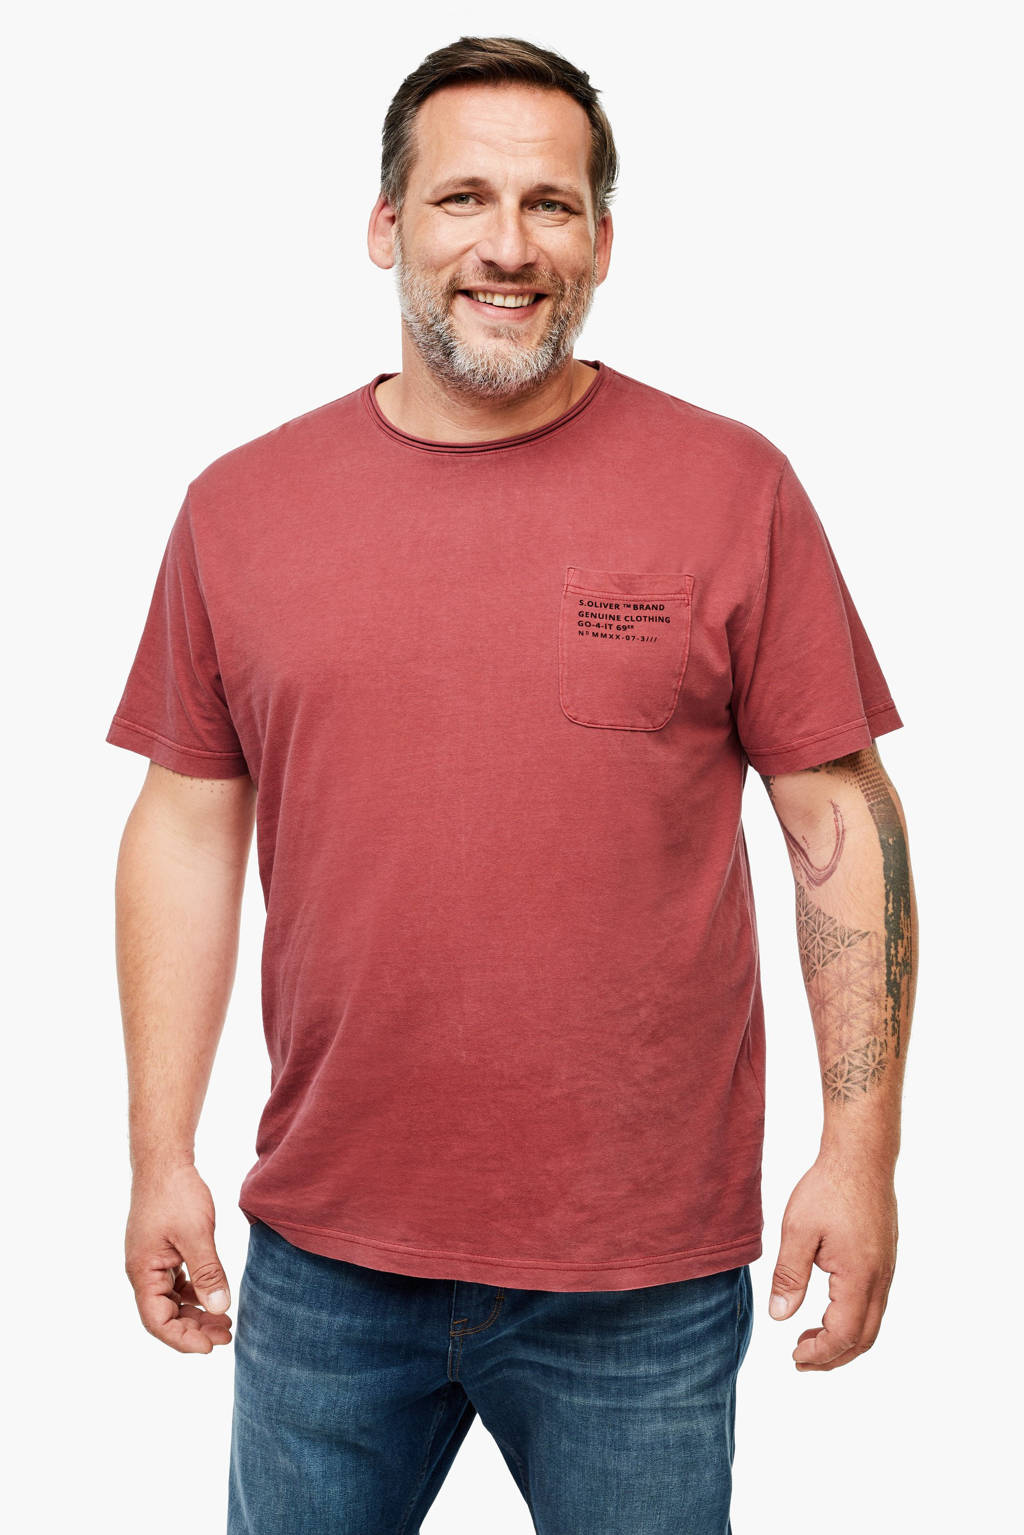 s.Oliver T-shirt rood, Rood